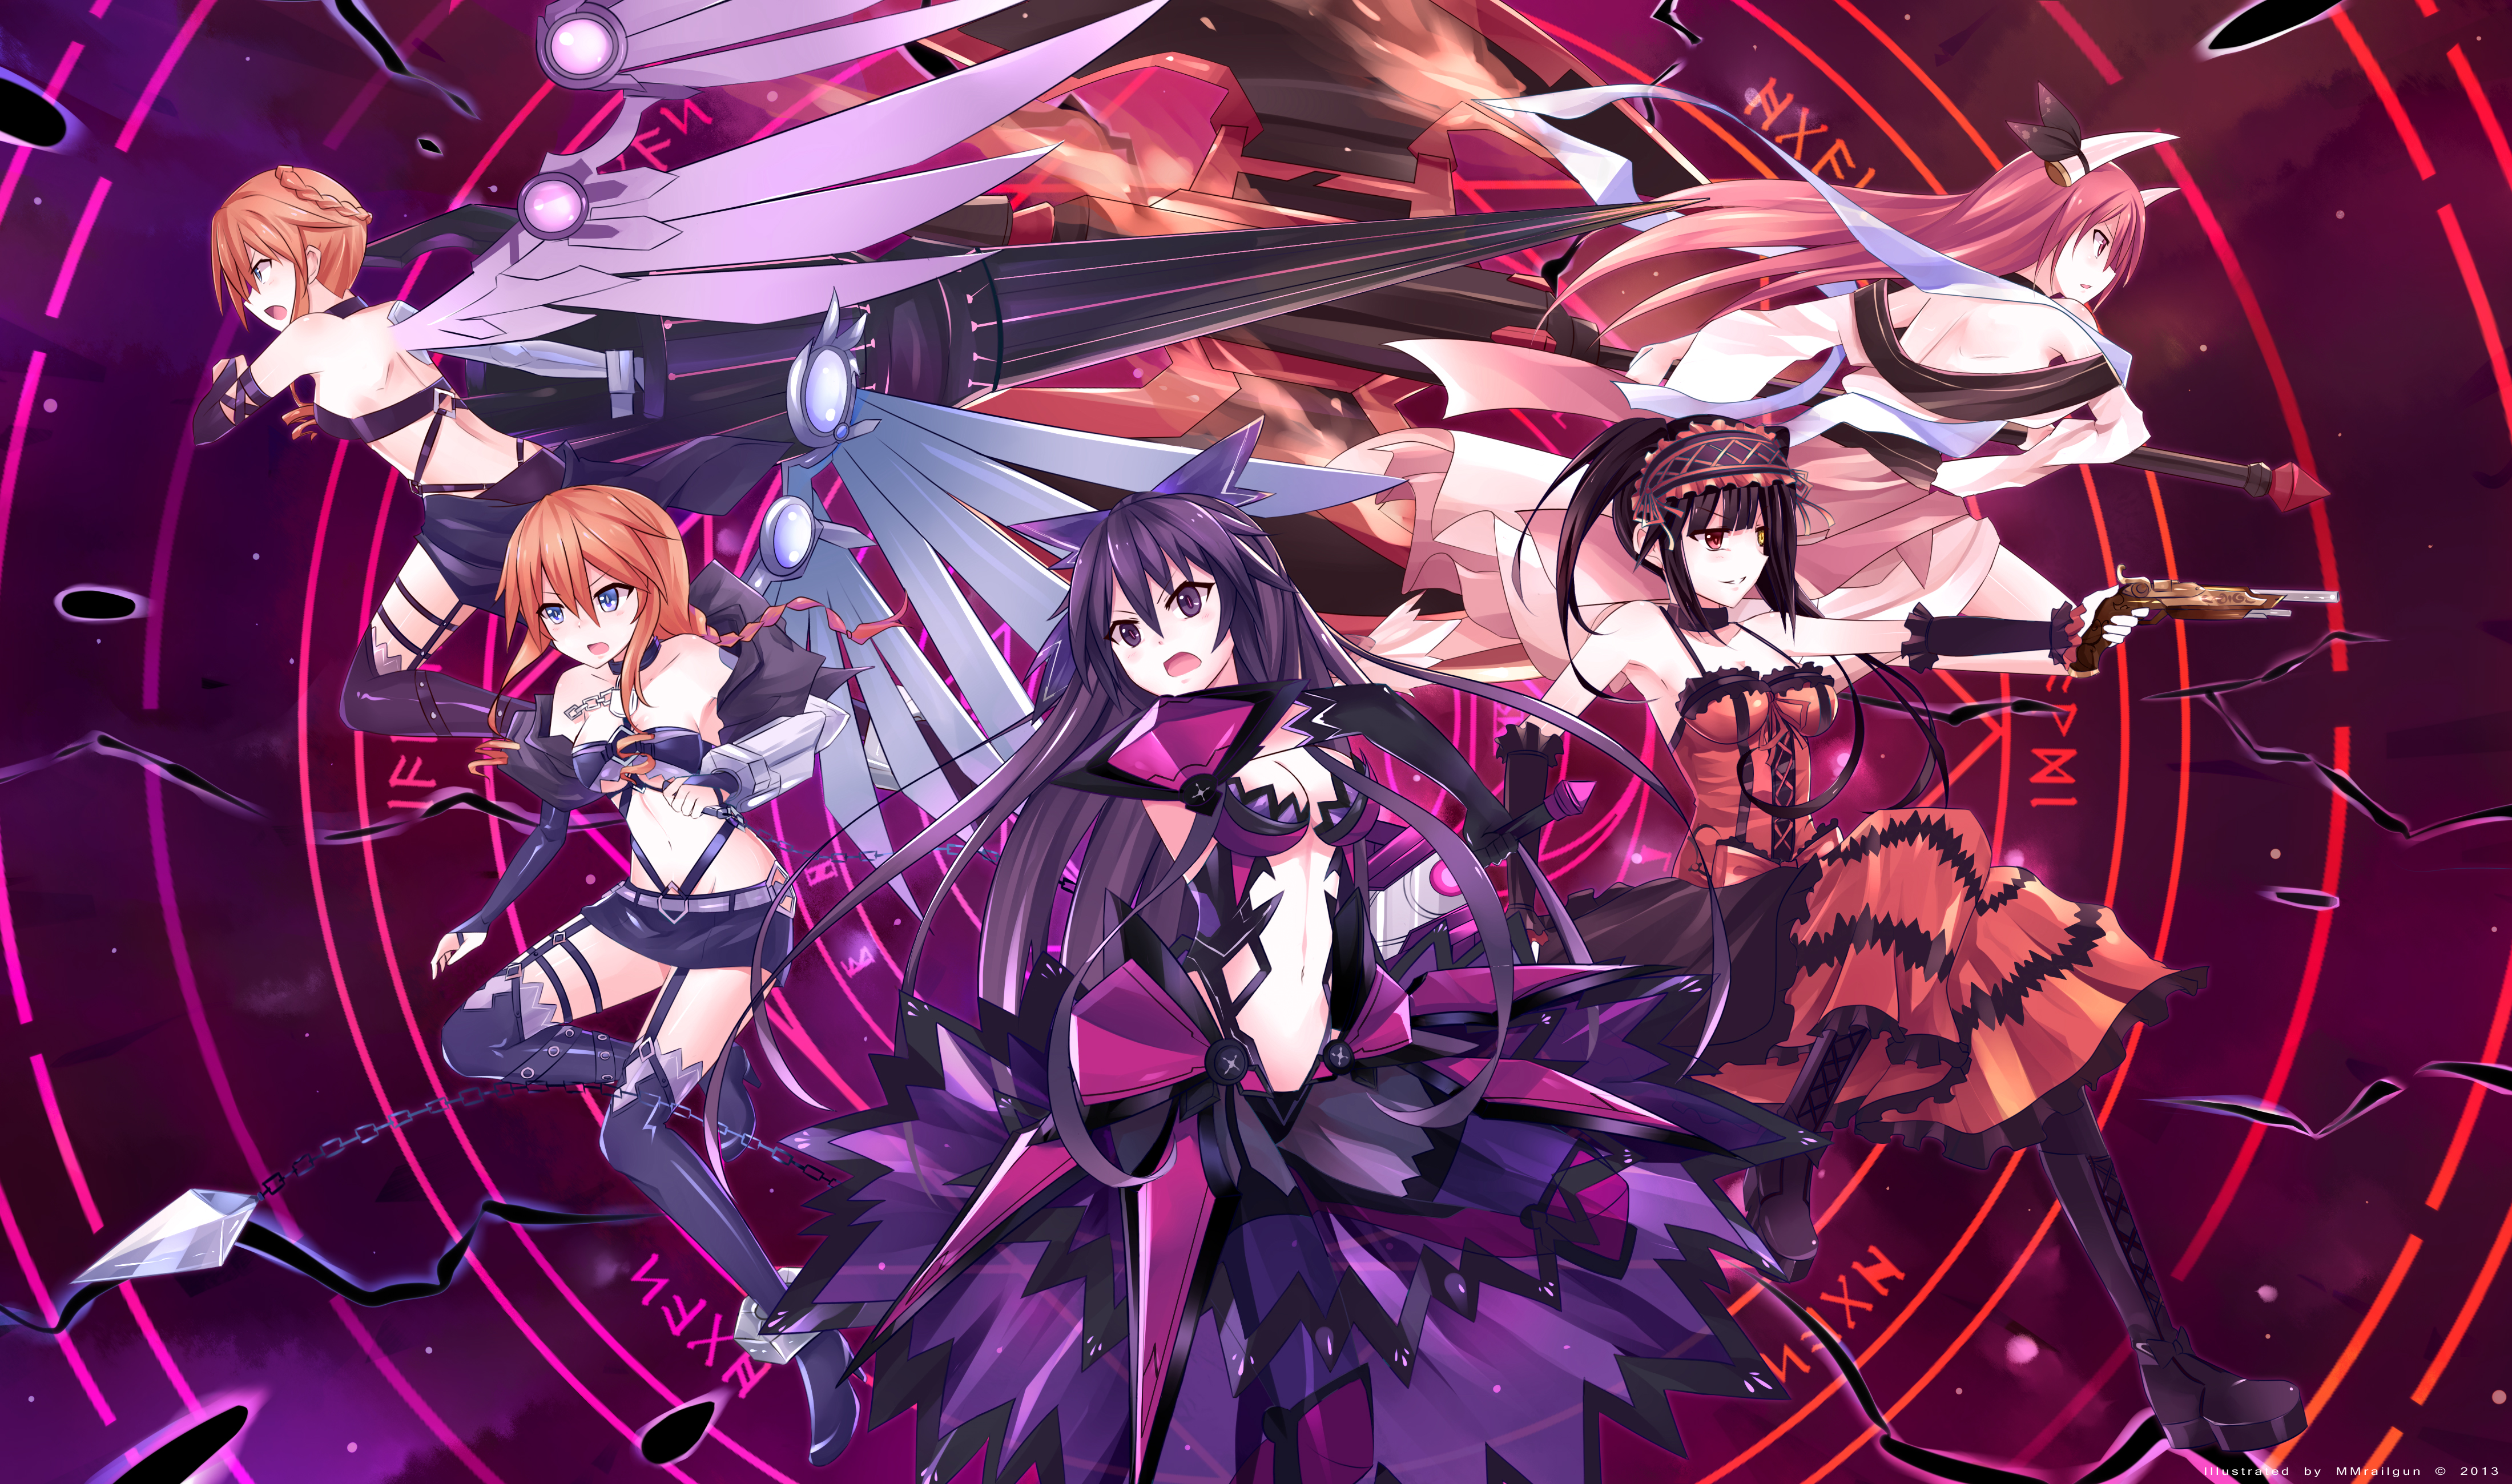 Date A Live 4k Ultra HD Wallpaper | Background Image | 4400x2600 | ID:682321 - Wallpaper Abyss